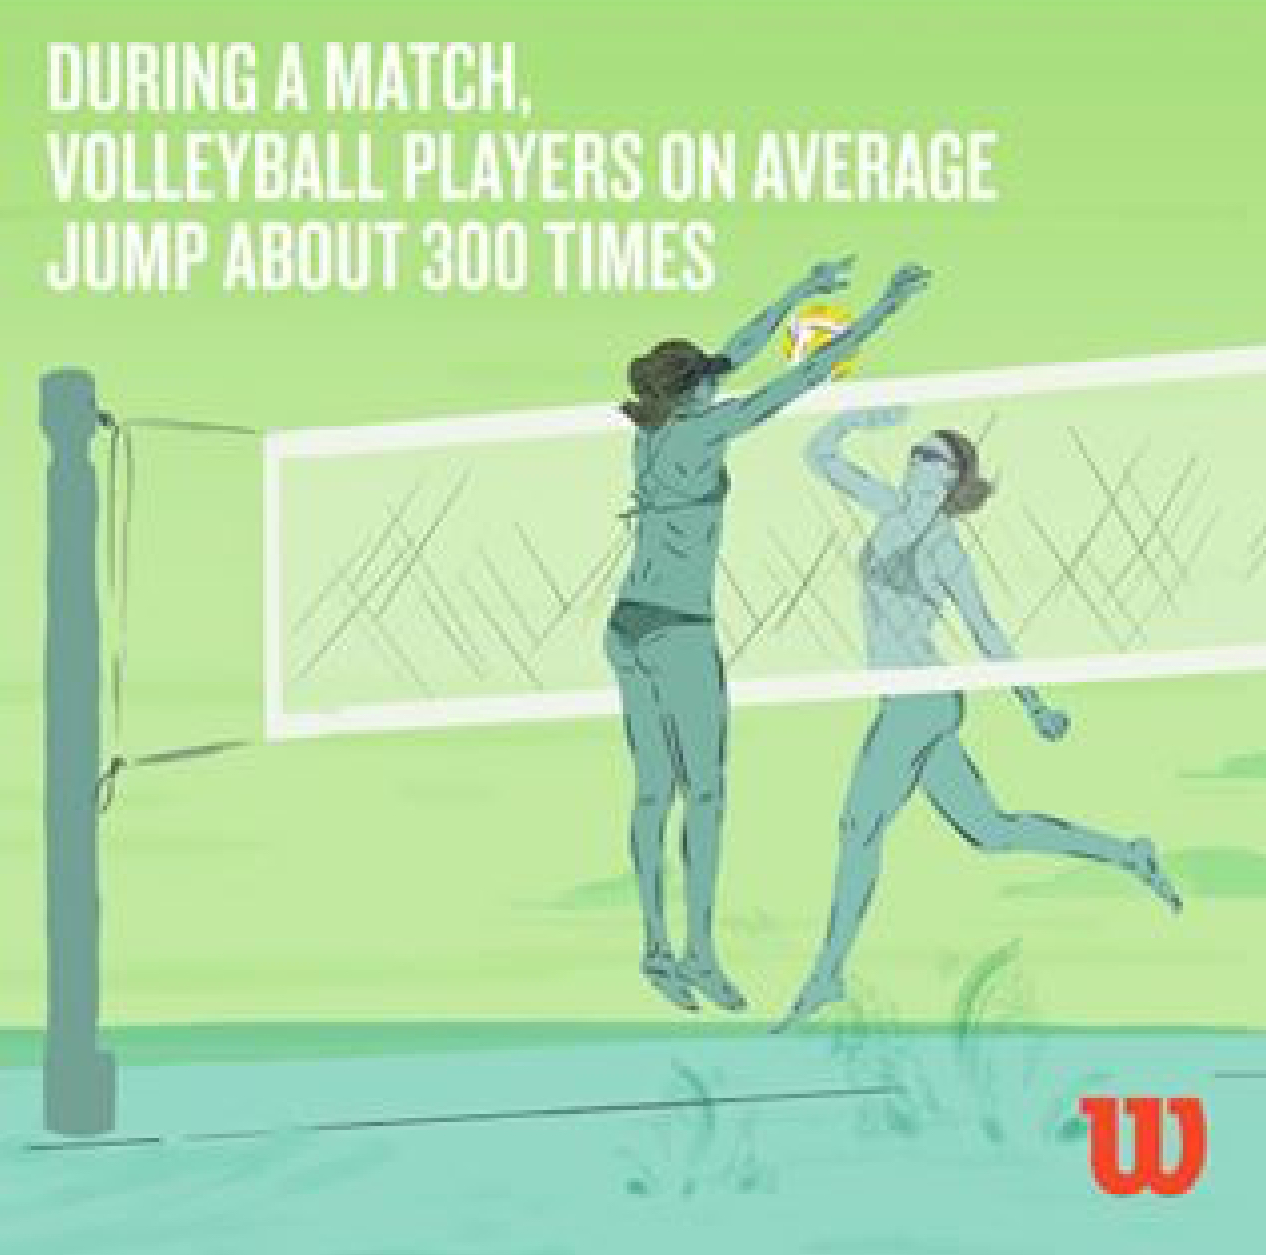 Wilson ad for 300 jumps